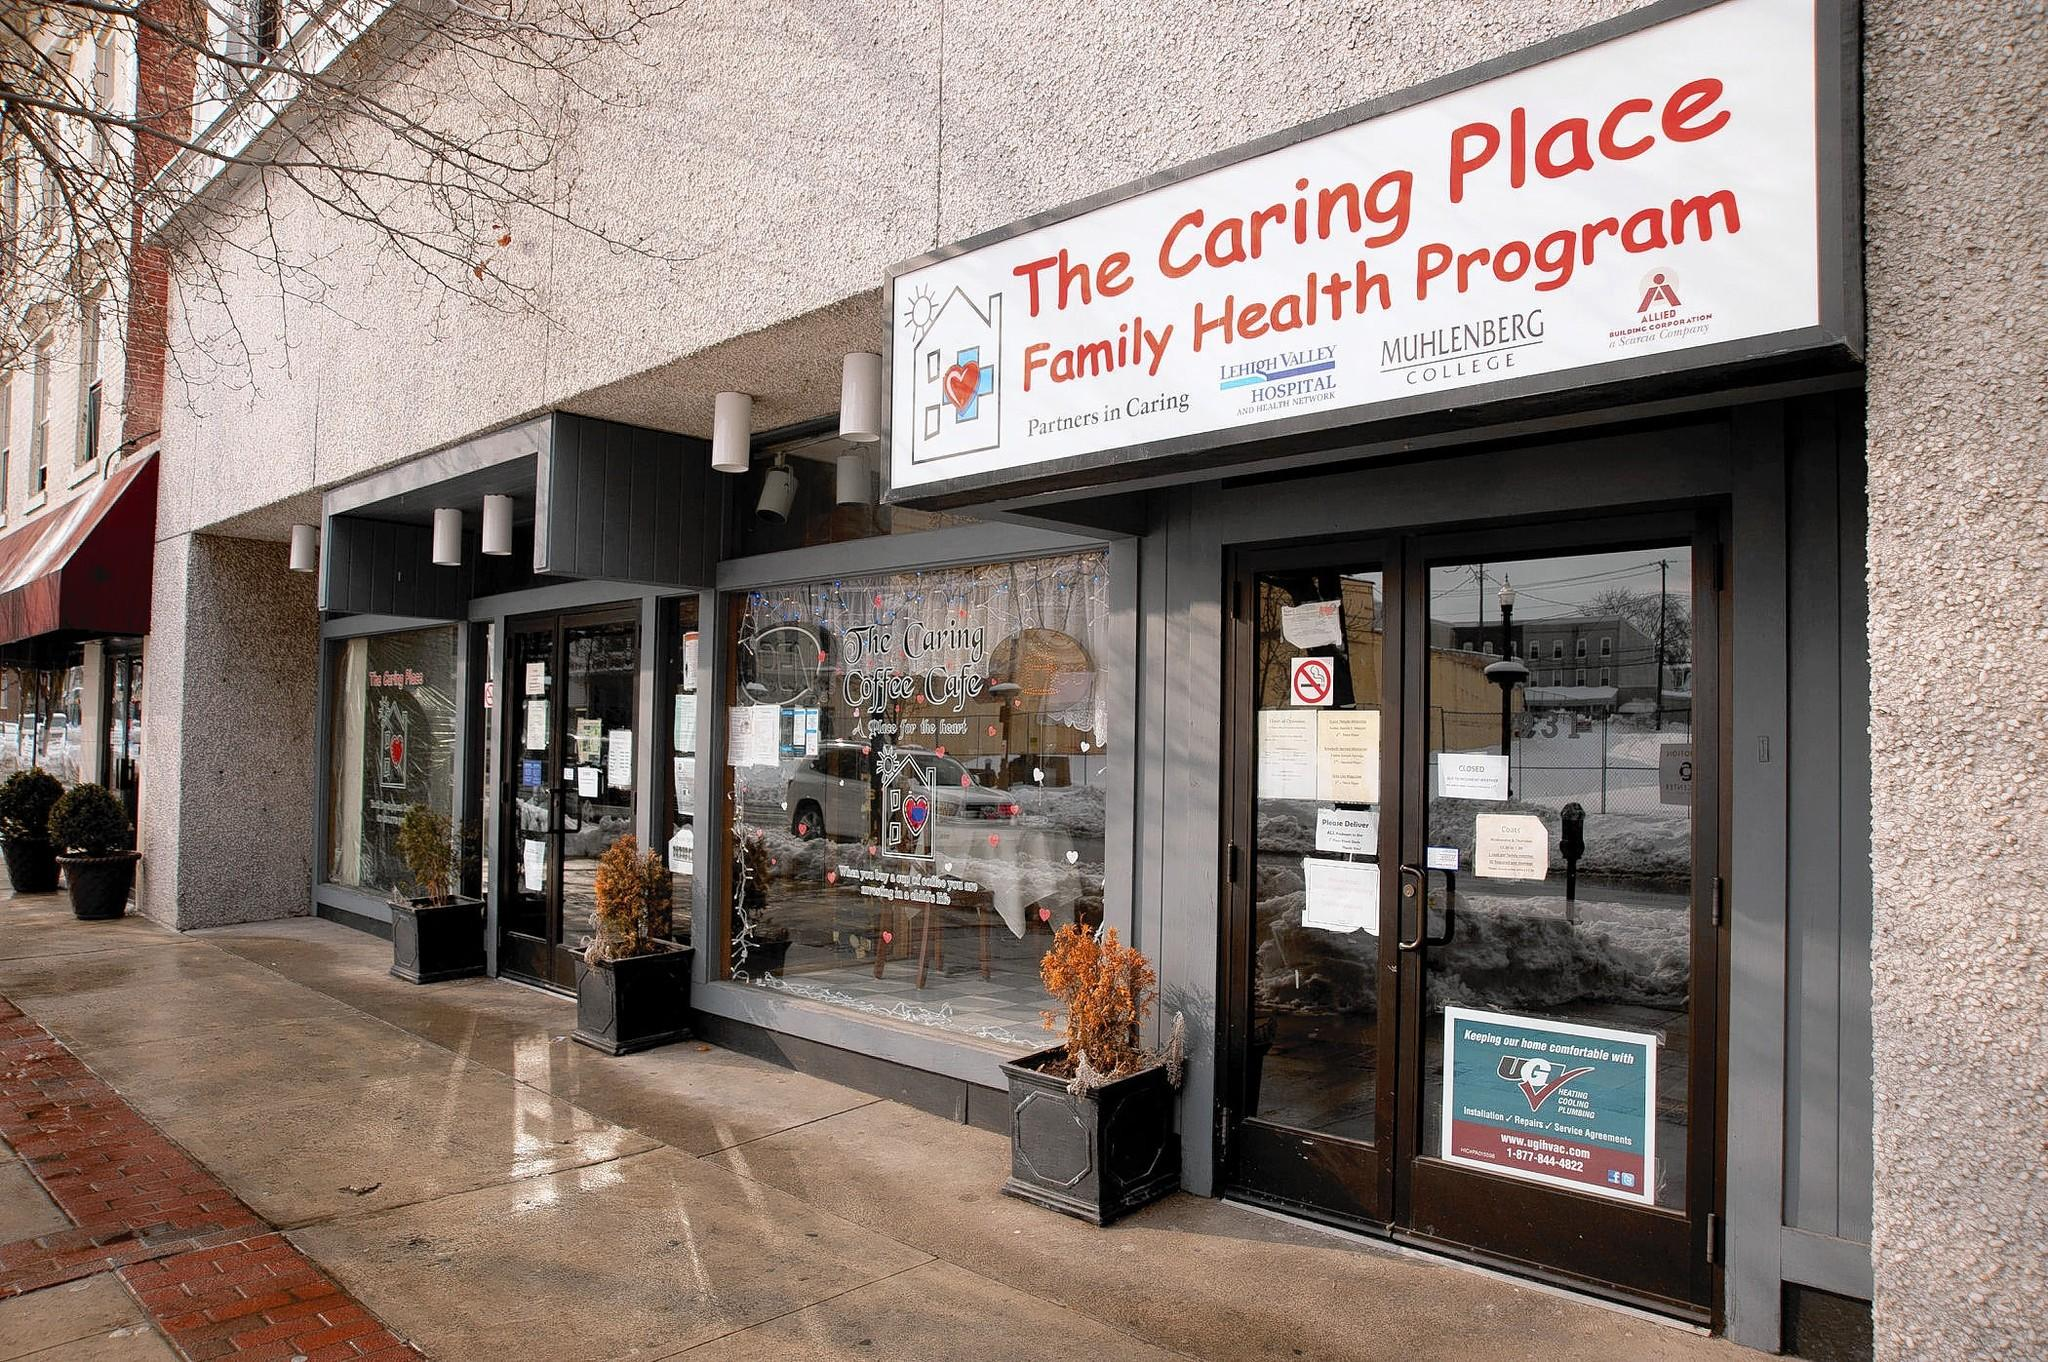 The Caring Place 931 Hamilton Blvd in Allentown.